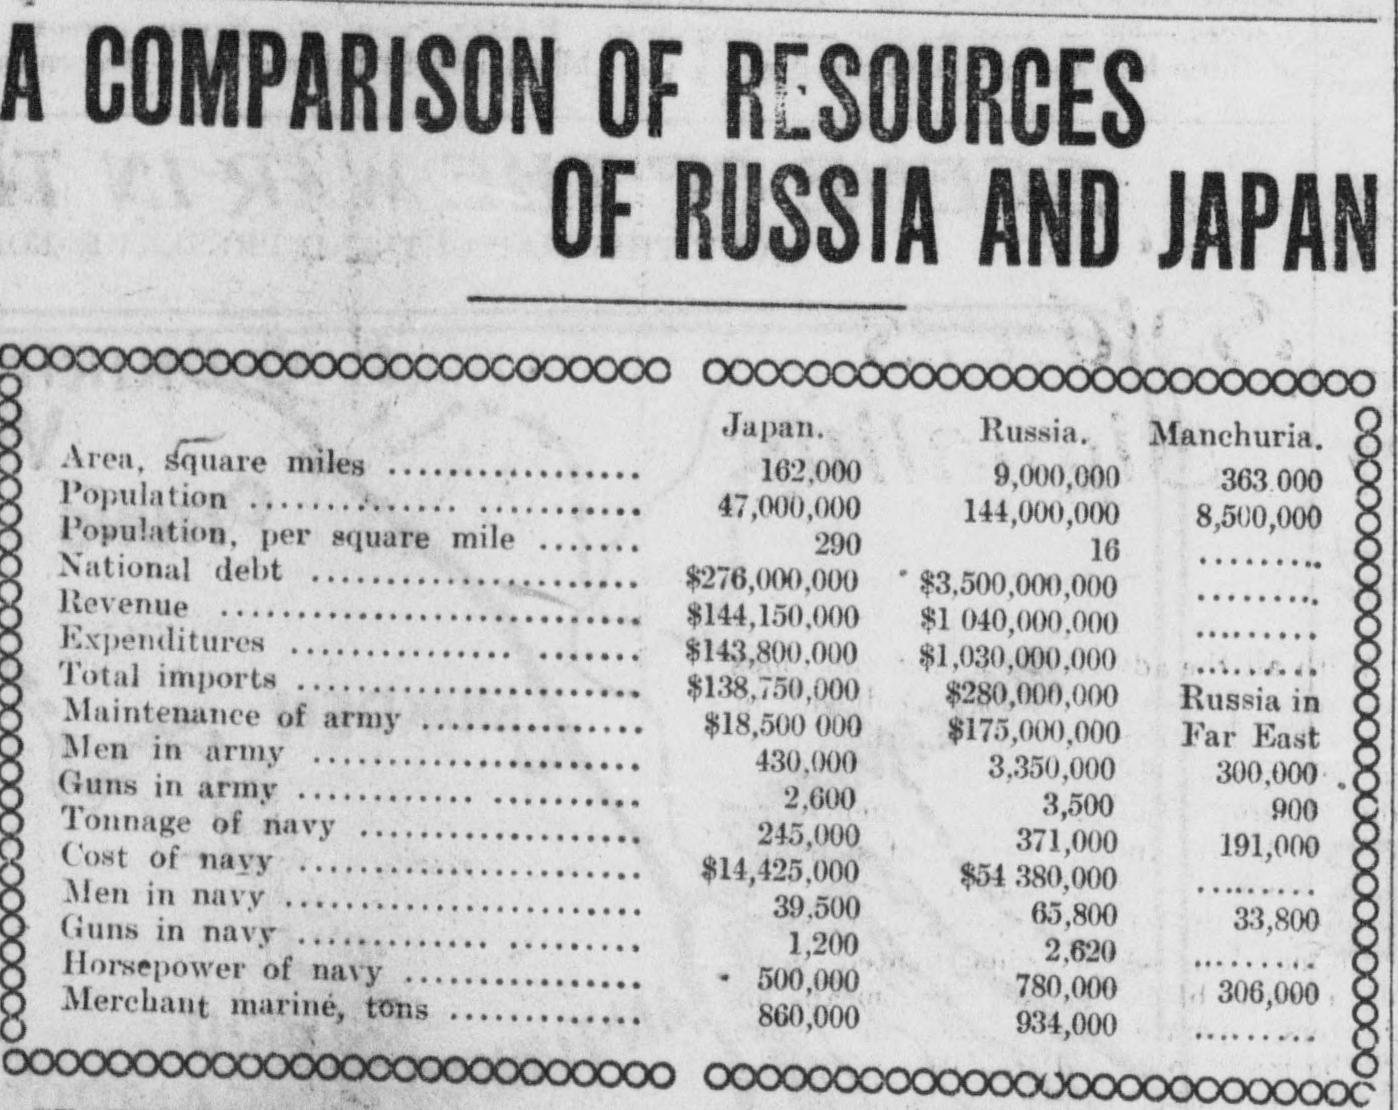 2015 Pay Chart Army: A COMPARISON OF RESOURCES OF RUSSIA AND JAPAN (1904).jpg ,Chart